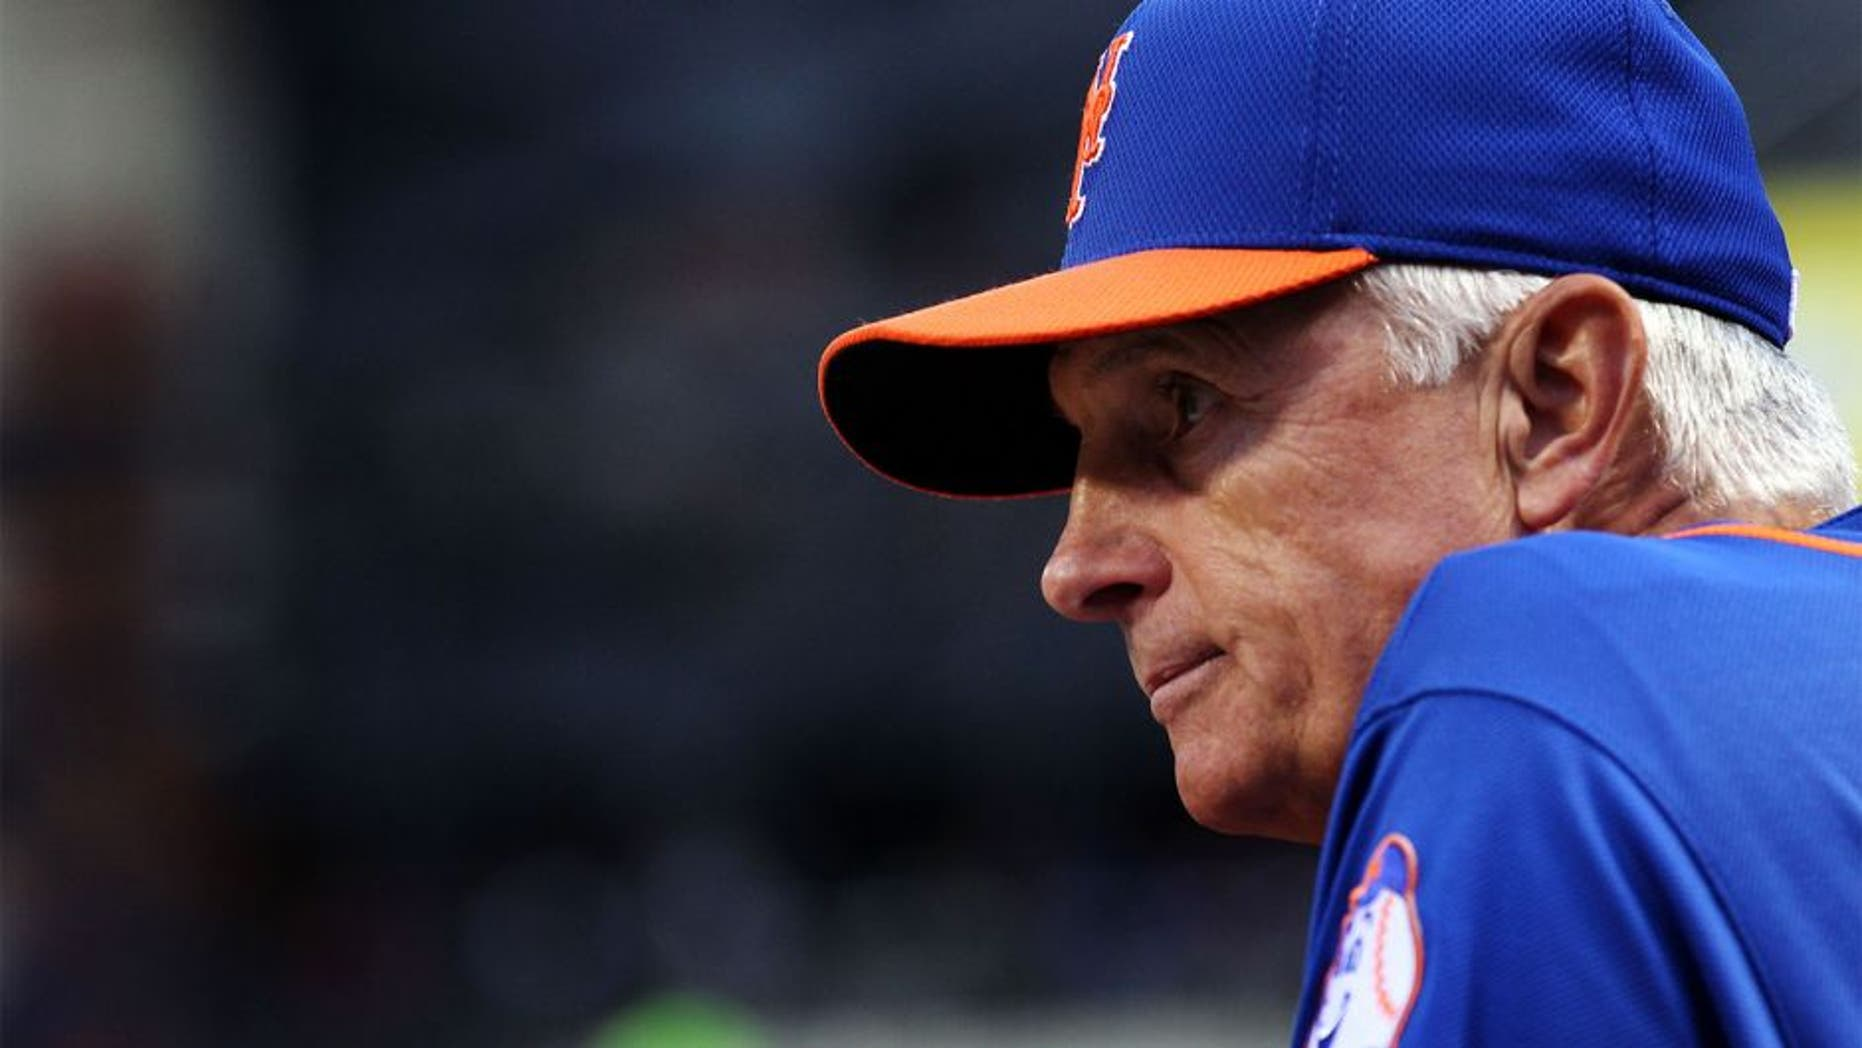 Aug 15, 2014; New York, NY, USA; New York Mets manager Terry Collins (10) looks on before taking on the Chicago Cubs at Citi Field. Mandatory Credit: Adam Hunger-USA TODAY Sports